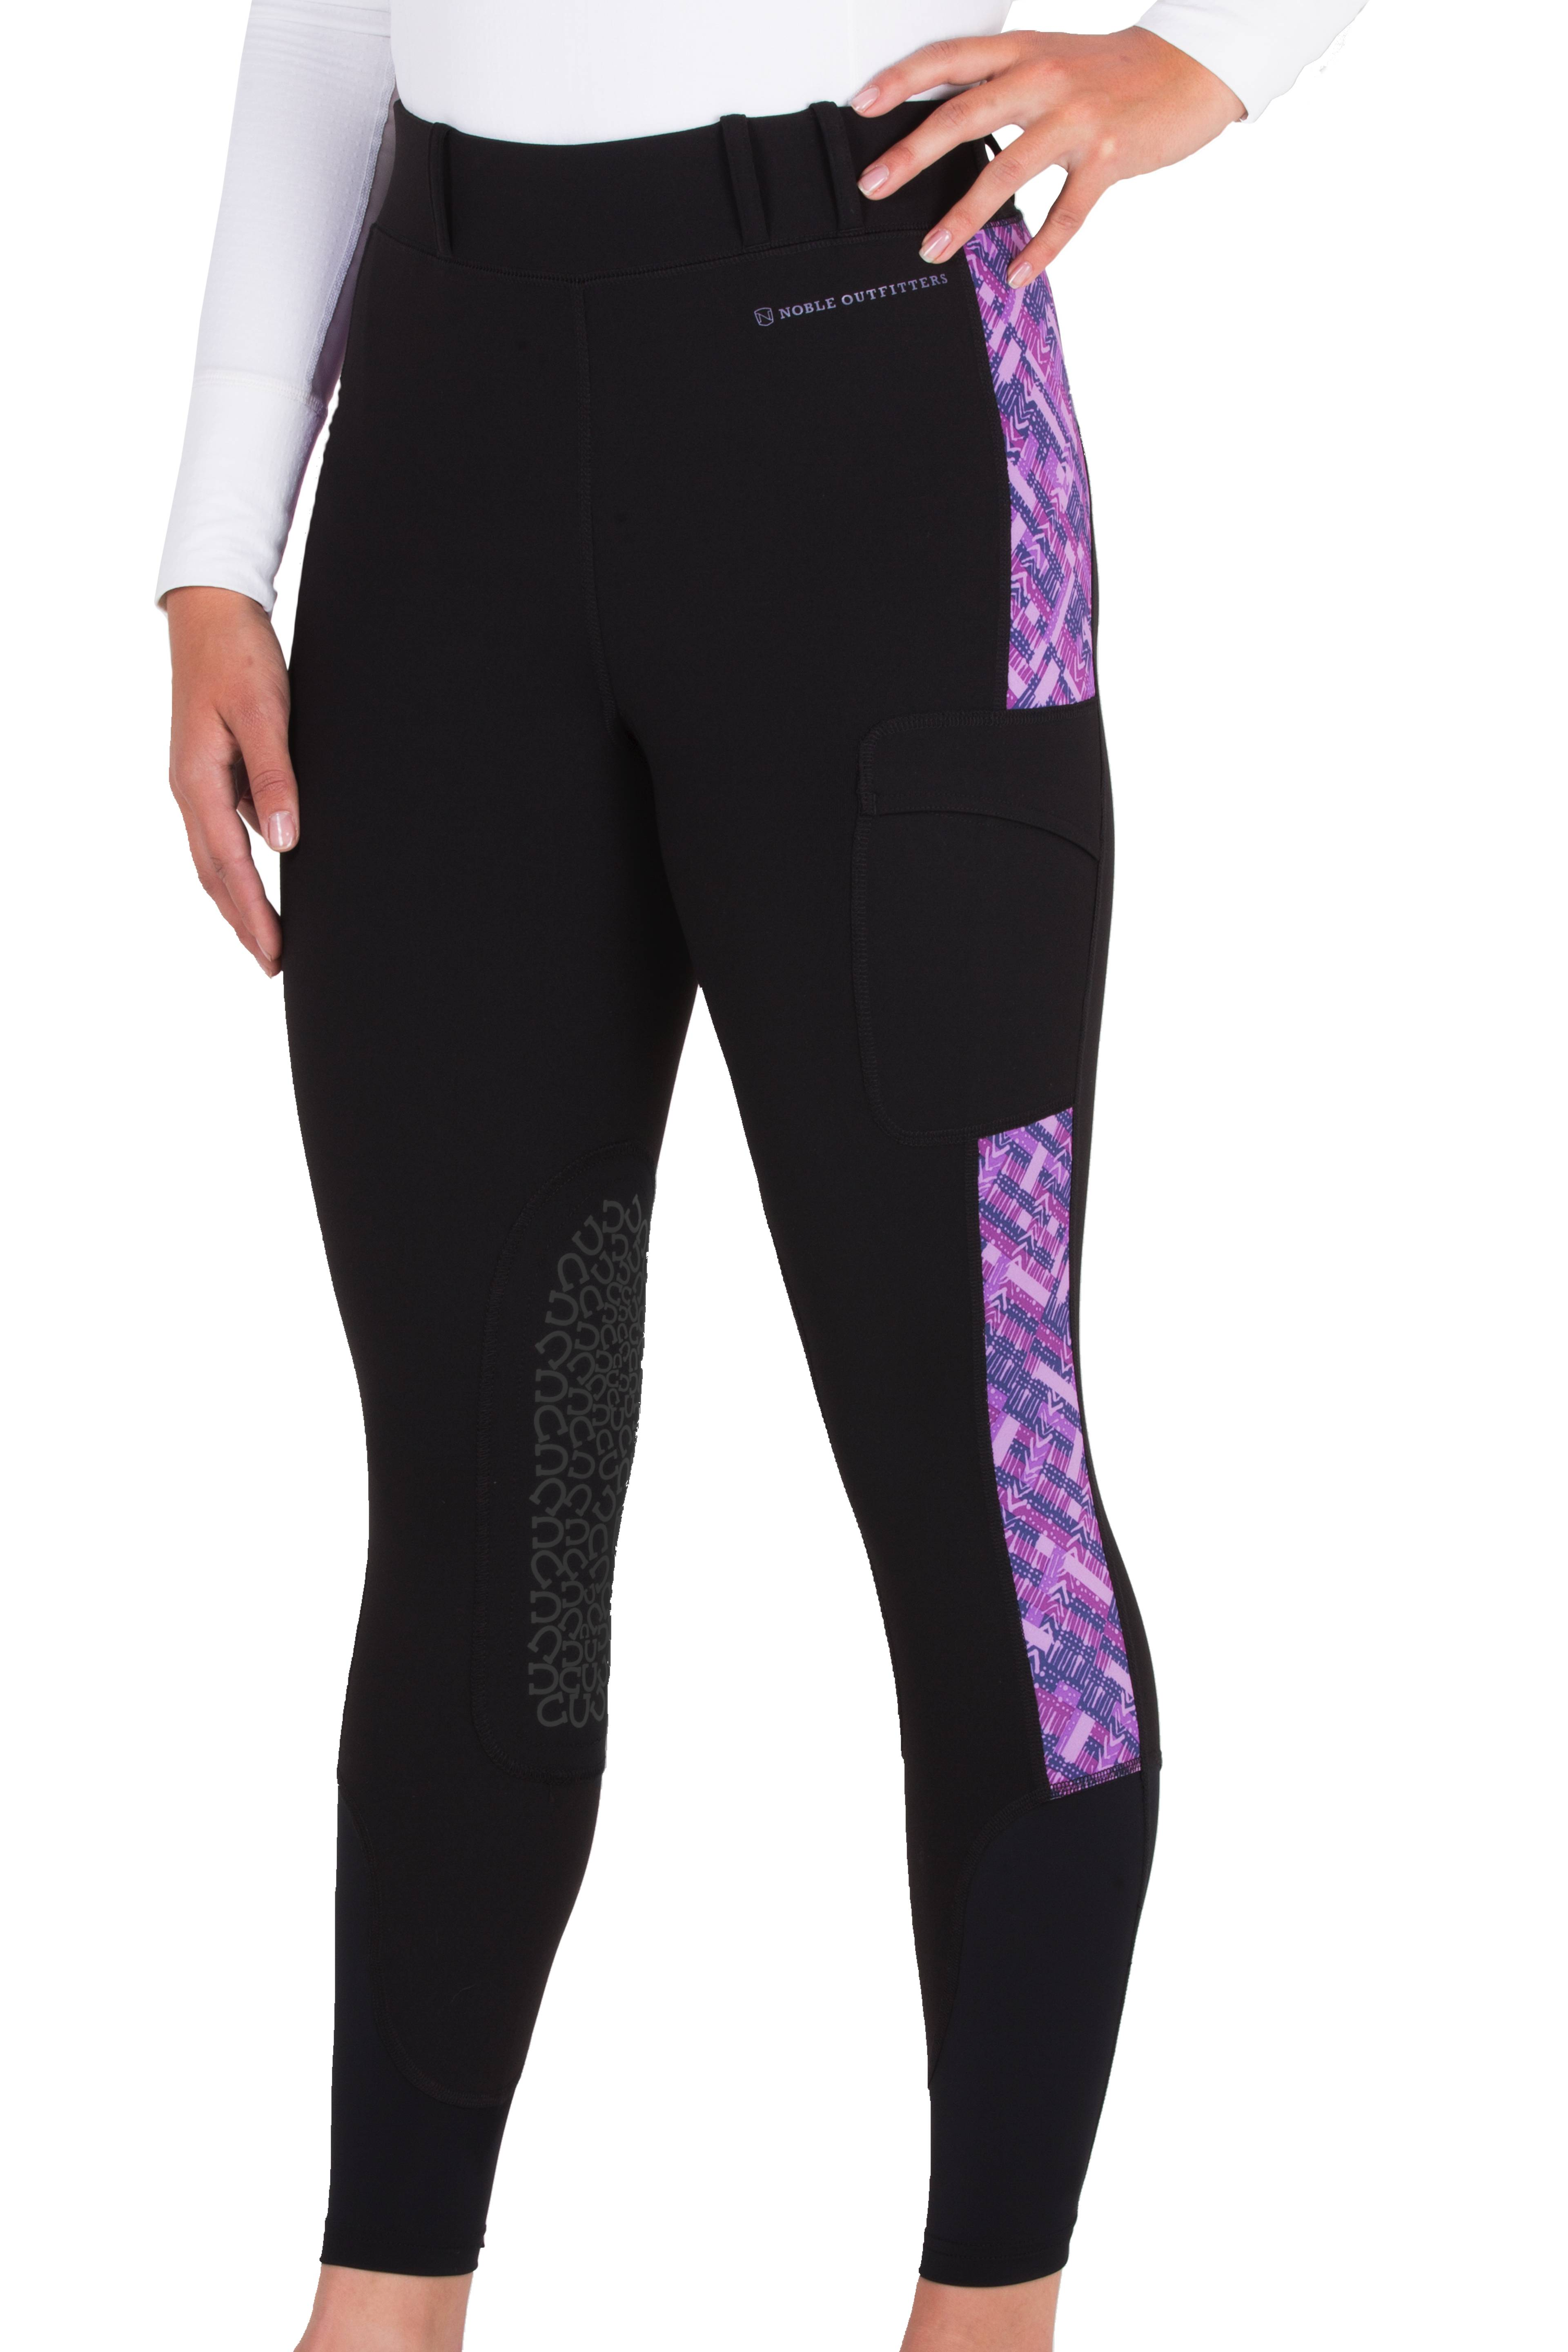 Noble Outfitters Printed Balance Riding Tights - Ladies